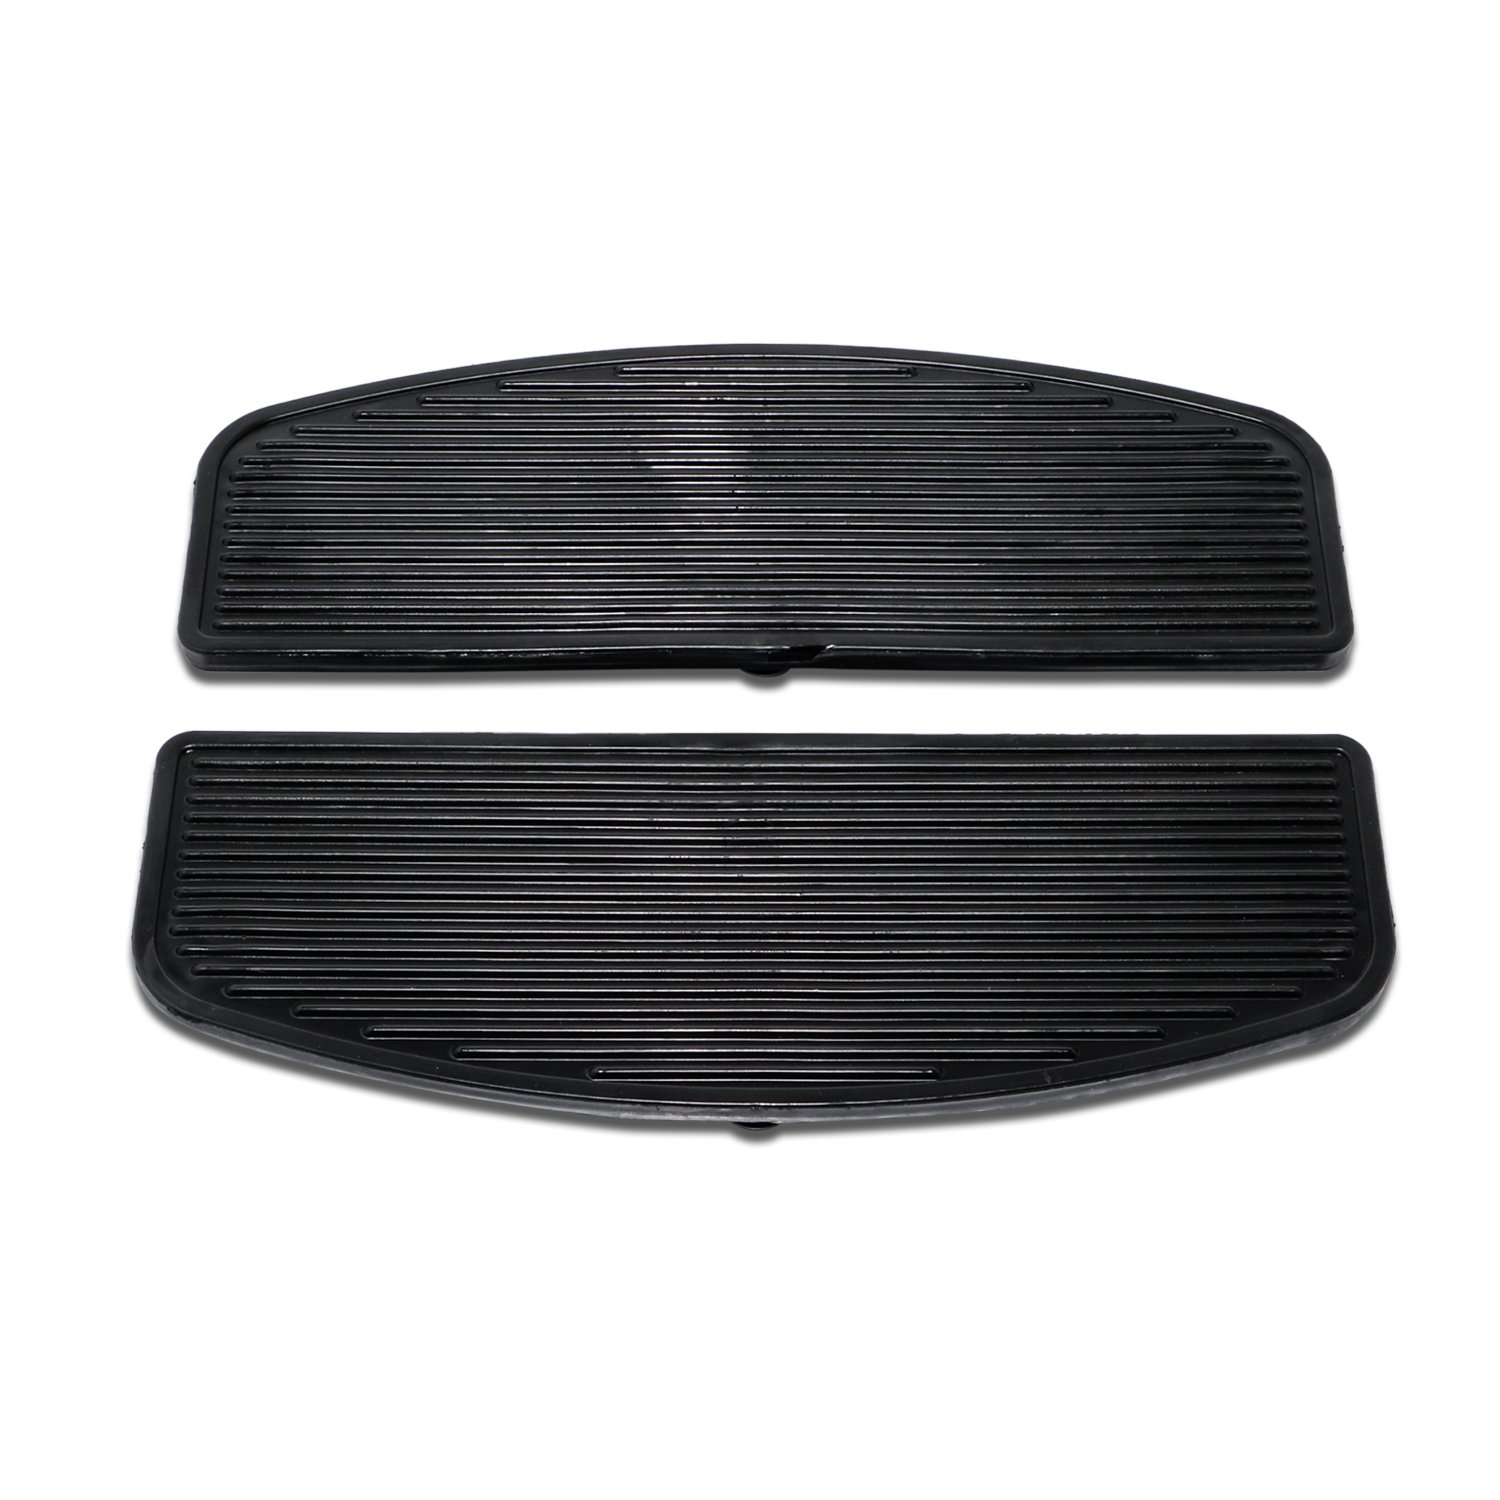 Senkauto Black Front Rubber Rider Insert Floorboard Footboards Foot Peg Boards For Harley Touring Electra Road Kind by Senkauto (Image #2)